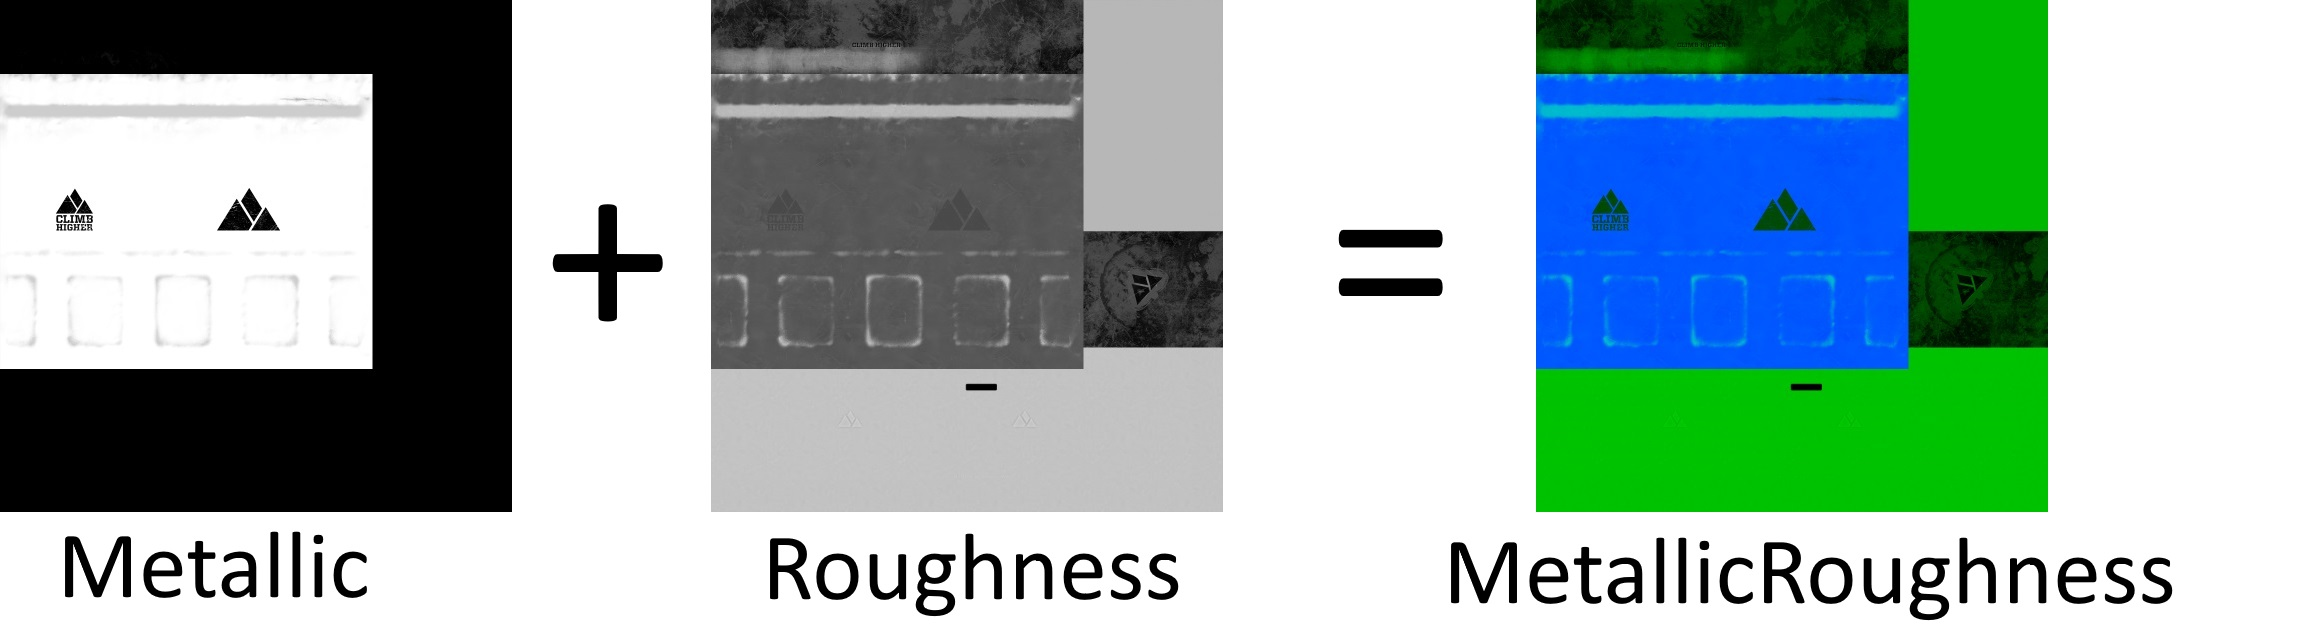 glTF metalness and roughness maps combined